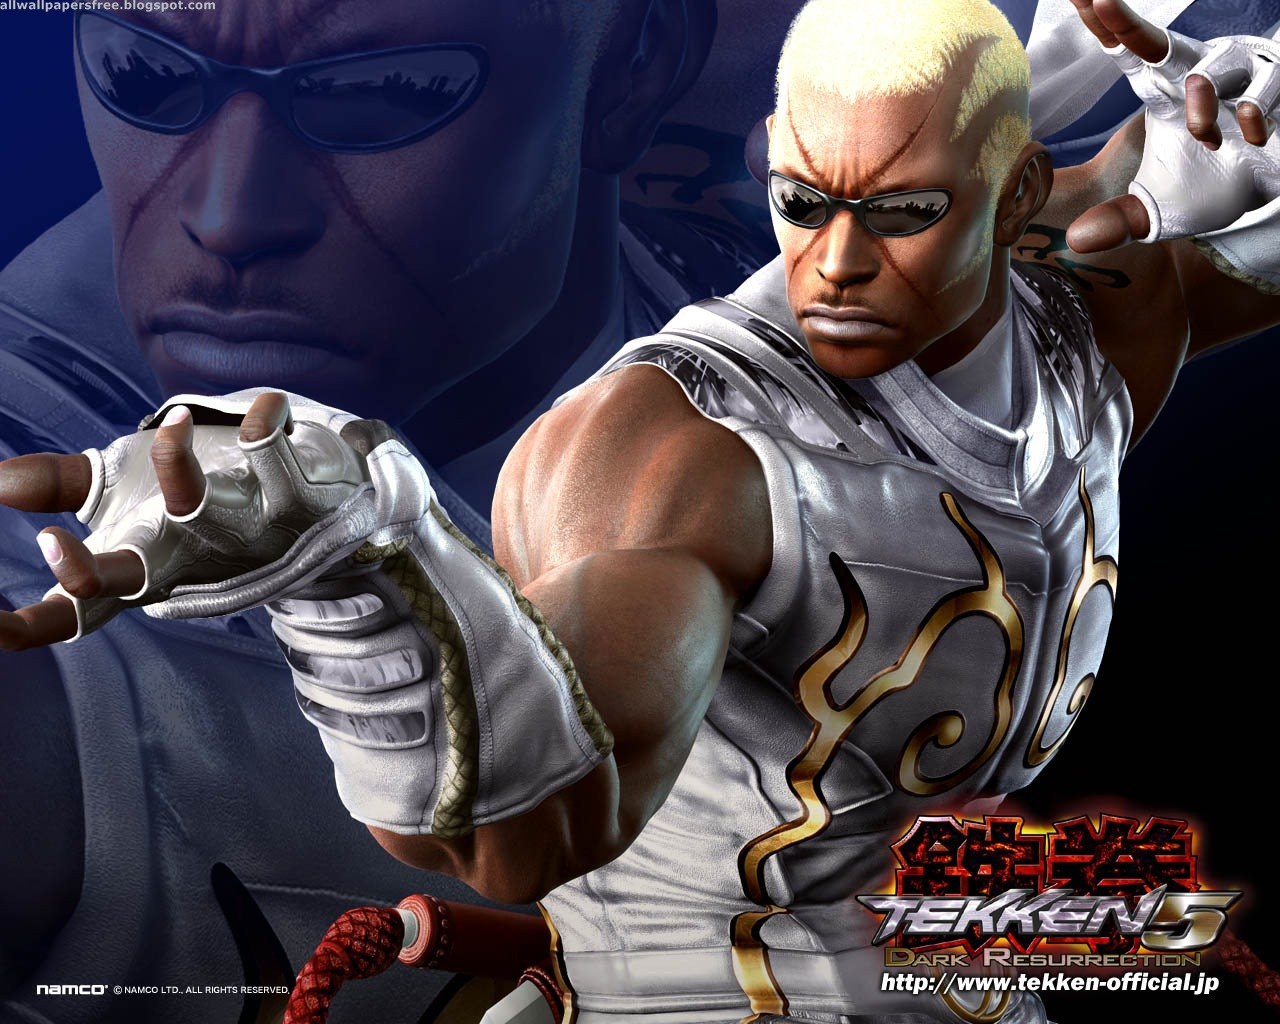 tekken 5 dark resurrection characters